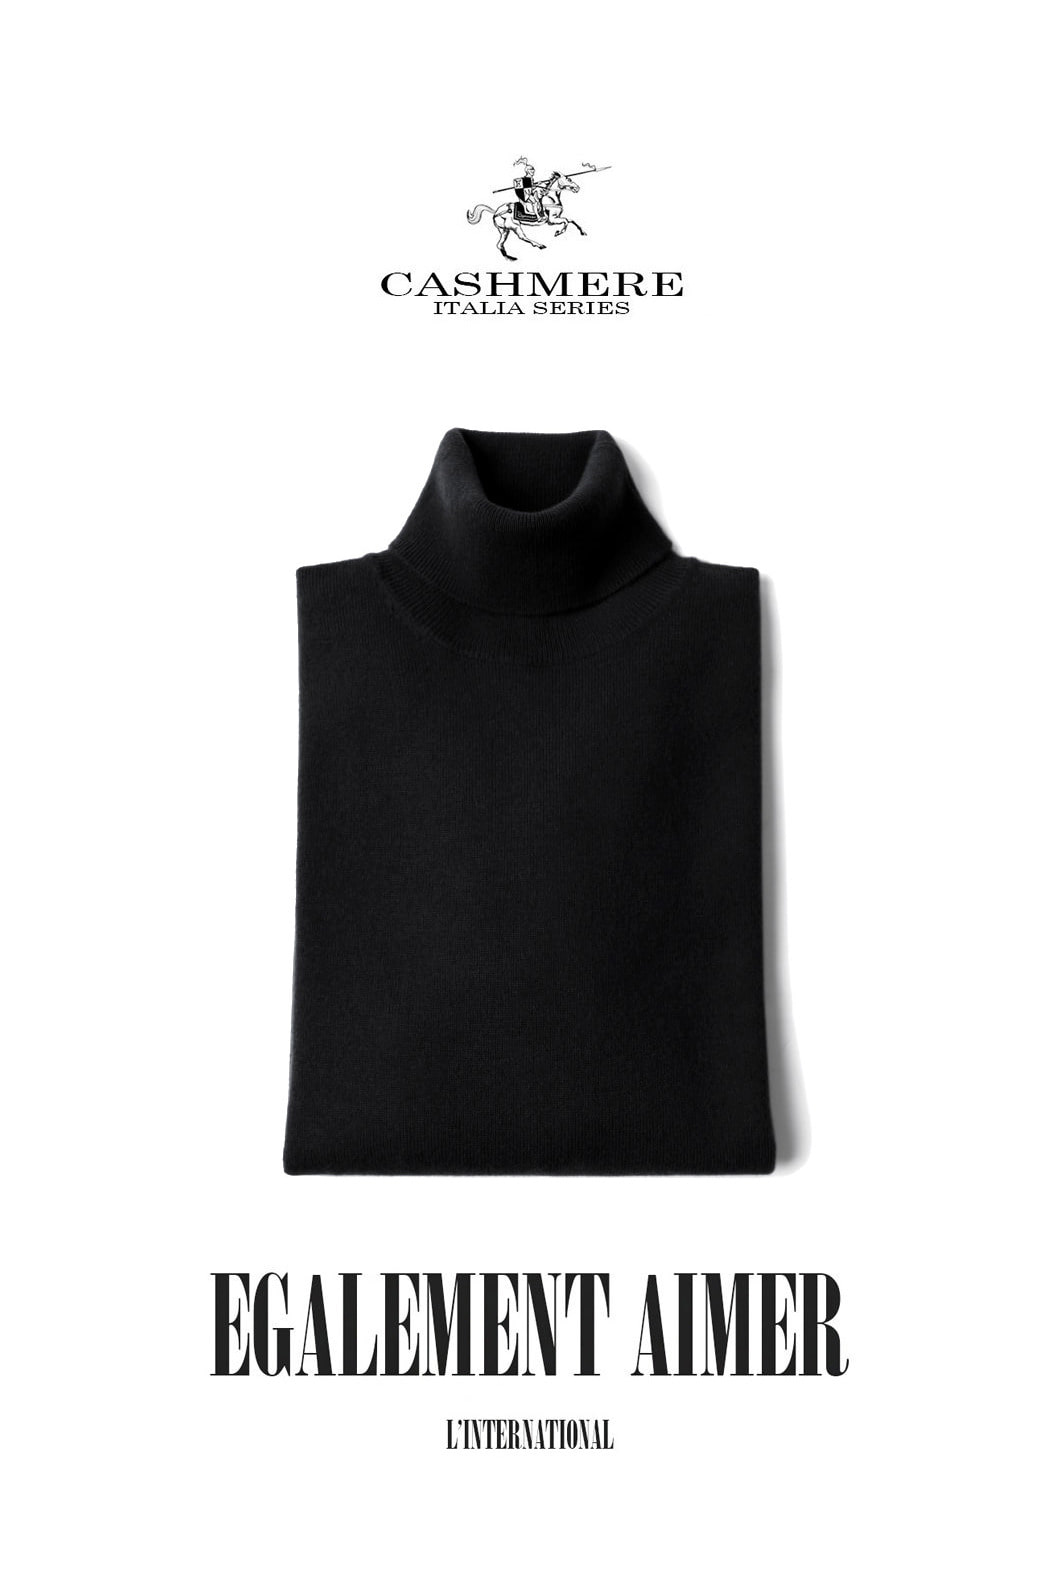 TAKE455 ROYAL CASHMERE TURTLENECK-BLACK[ITALIA SERIES]캐시미어 터틀넥-BEST SELLER!